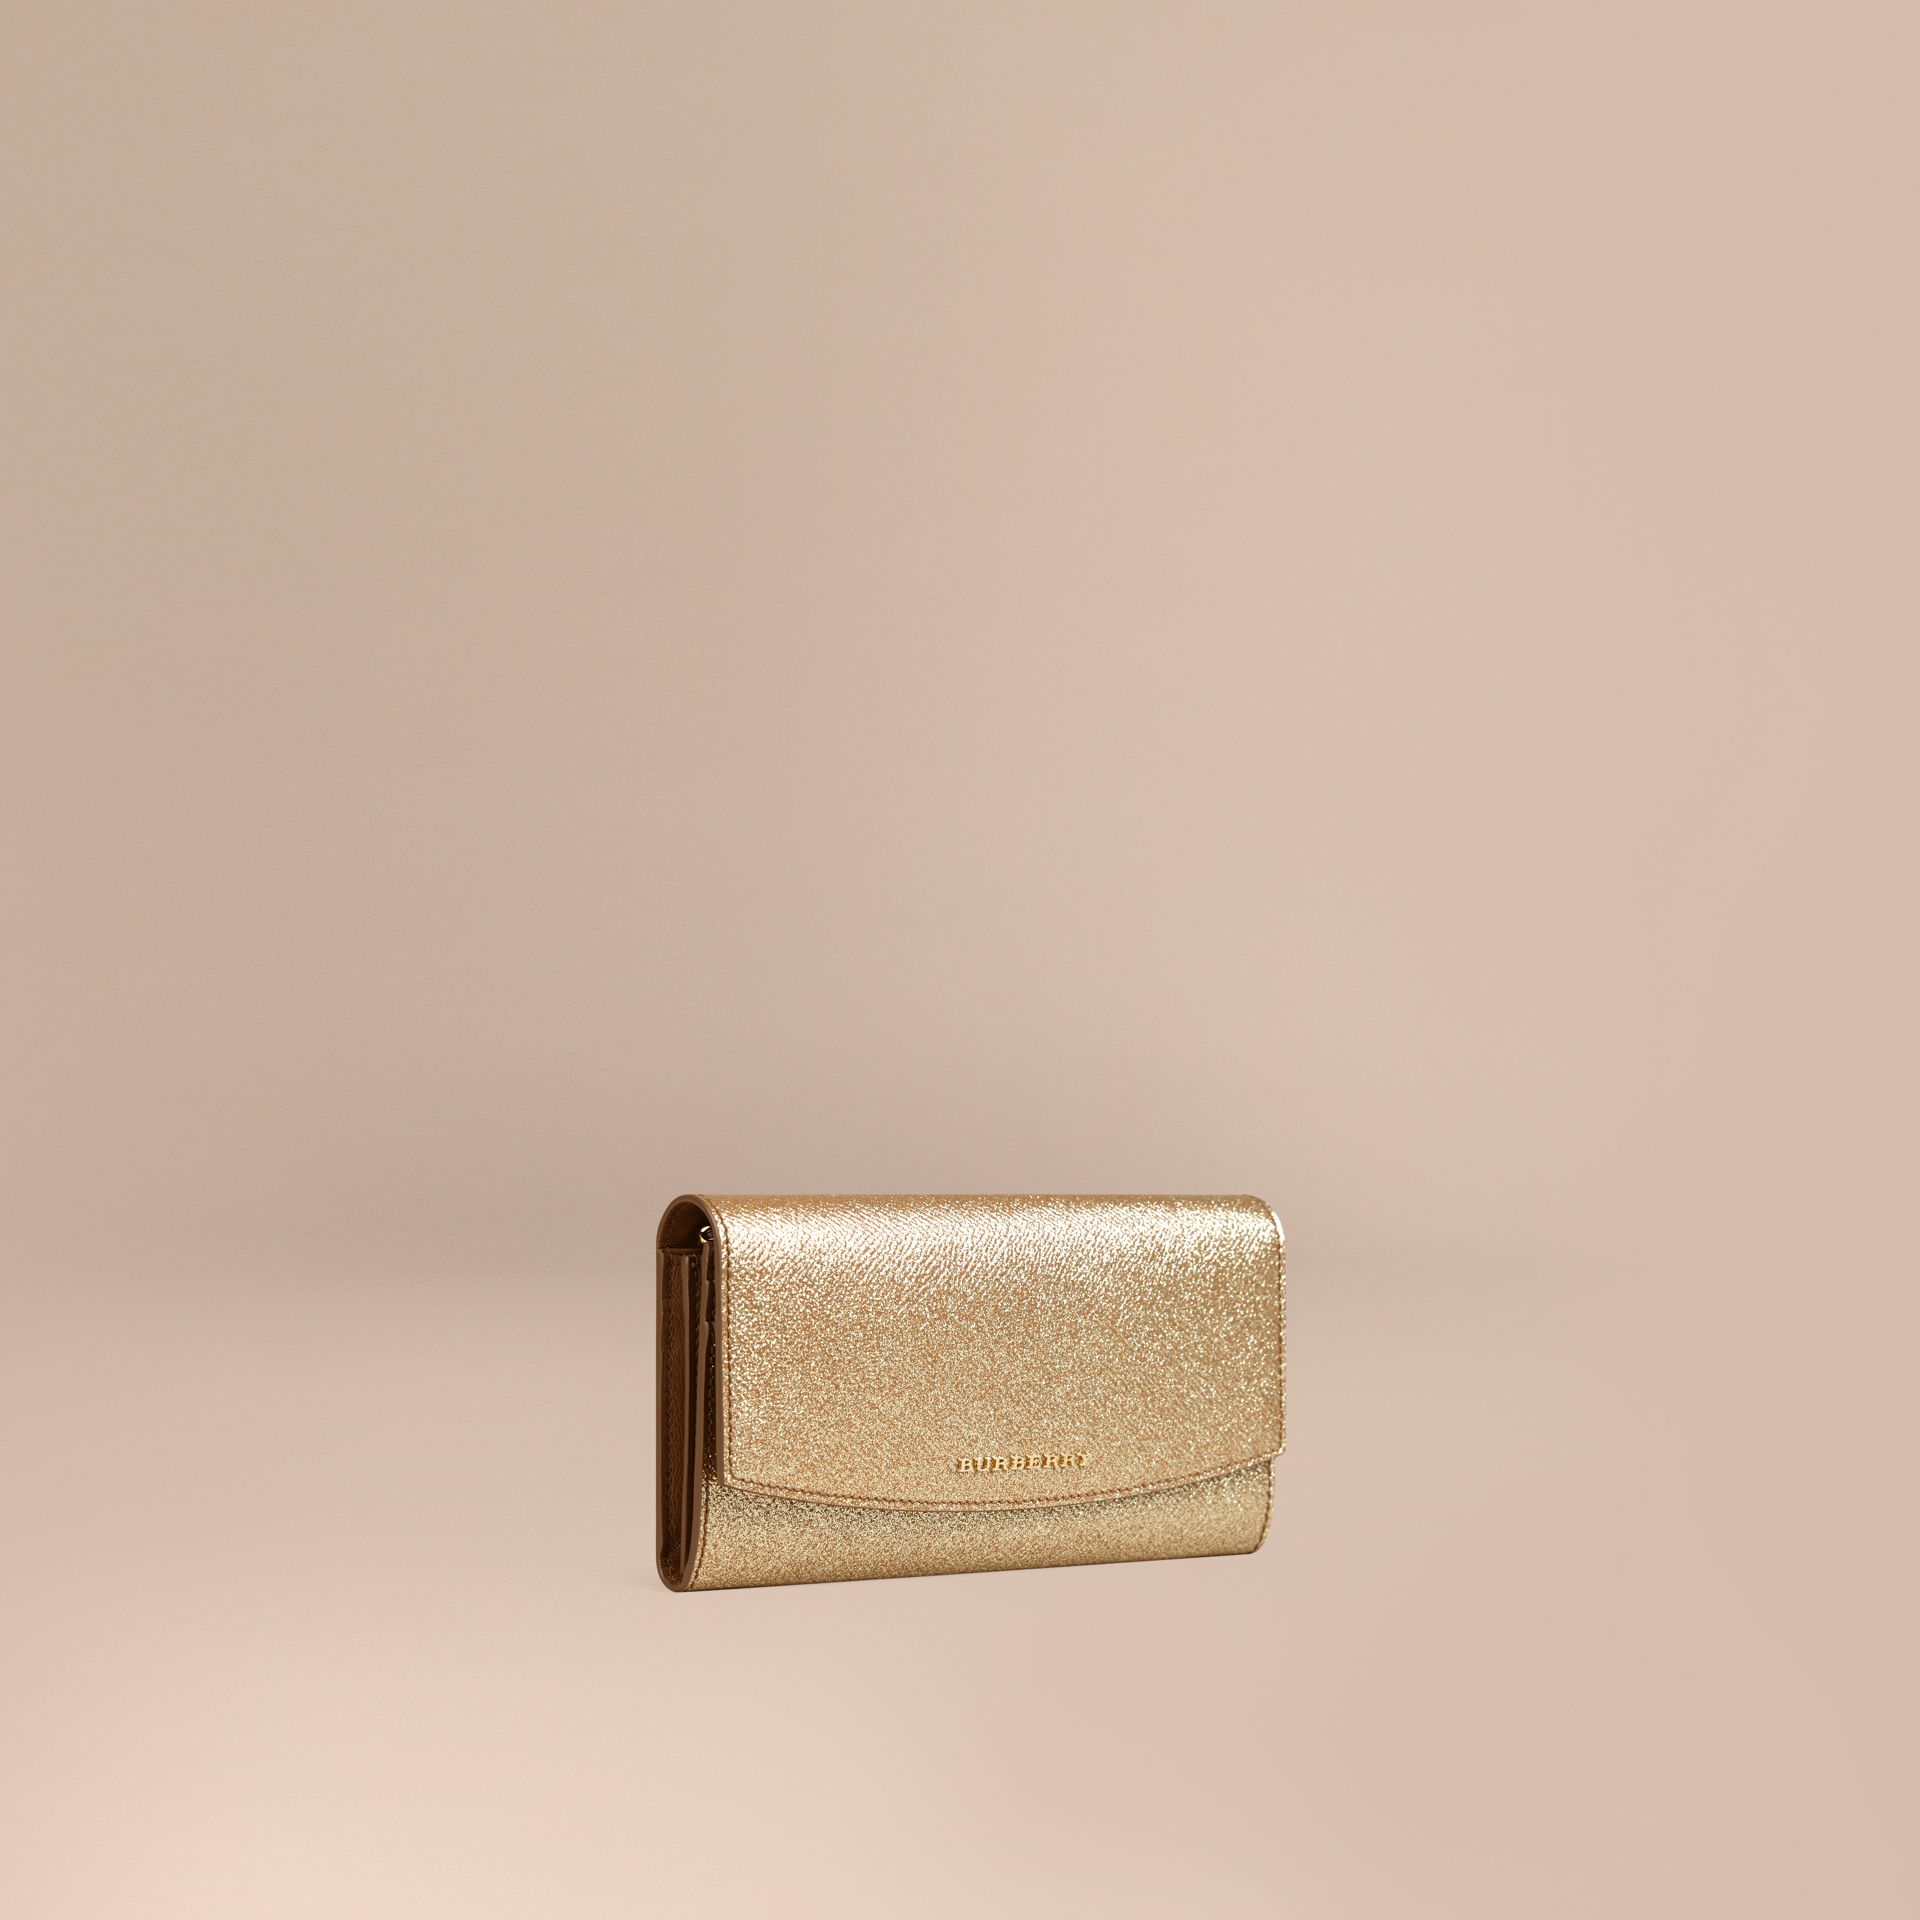 Glitter Patent London Leather Continental Wallet in Camel / Gold - gallery image 1